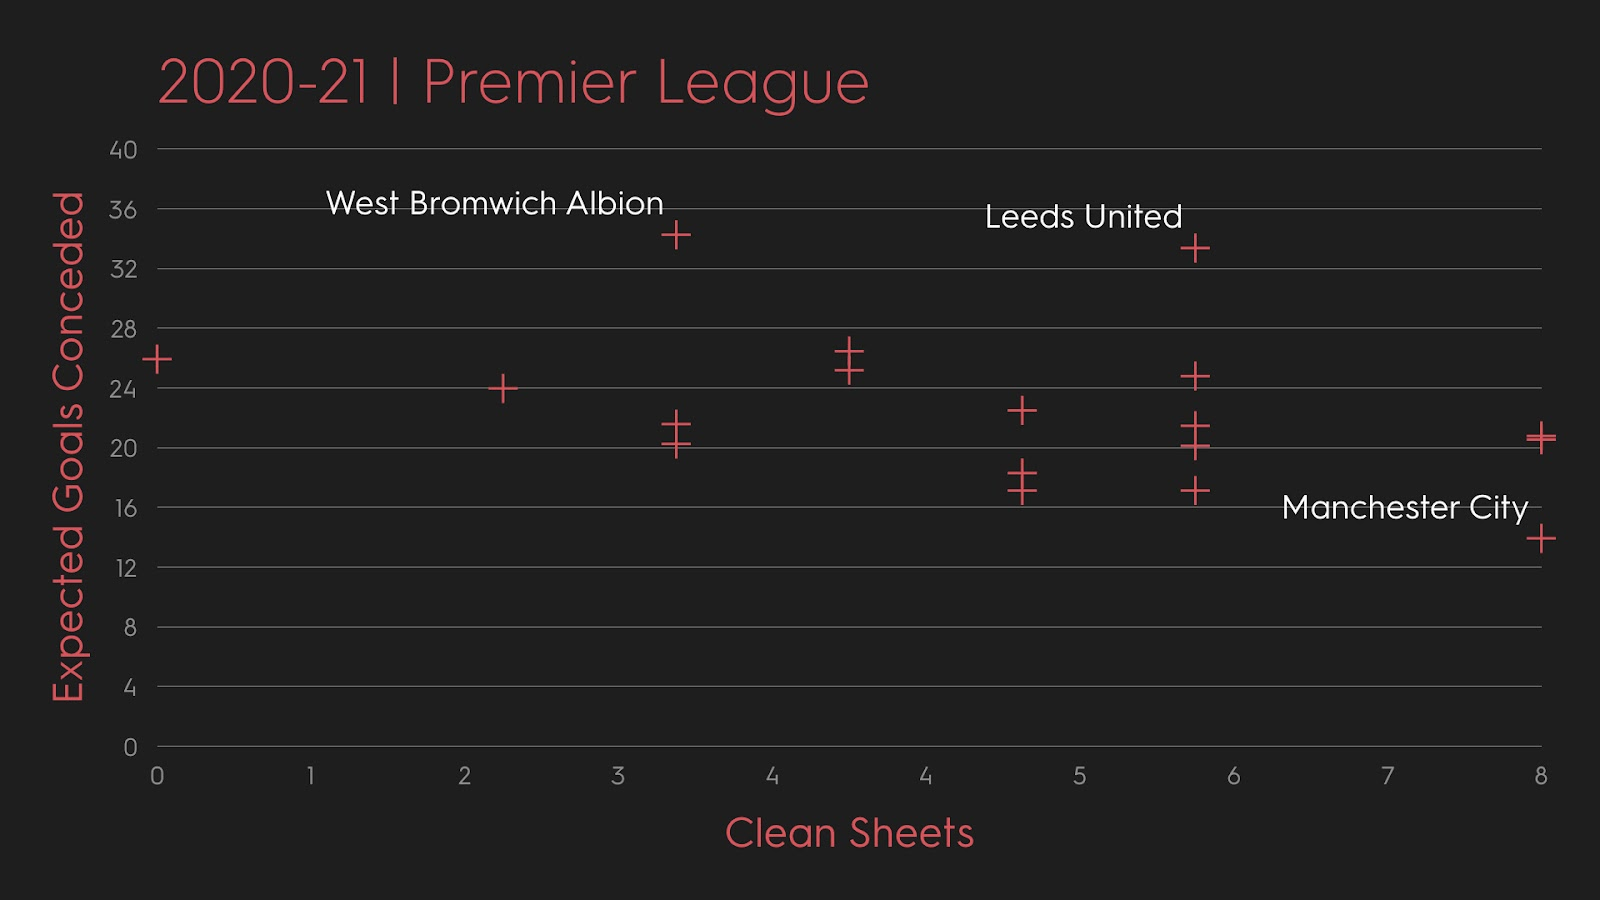 A graphic showing goals conceded and clean sheets in the Premier League during the 20120/21 season.